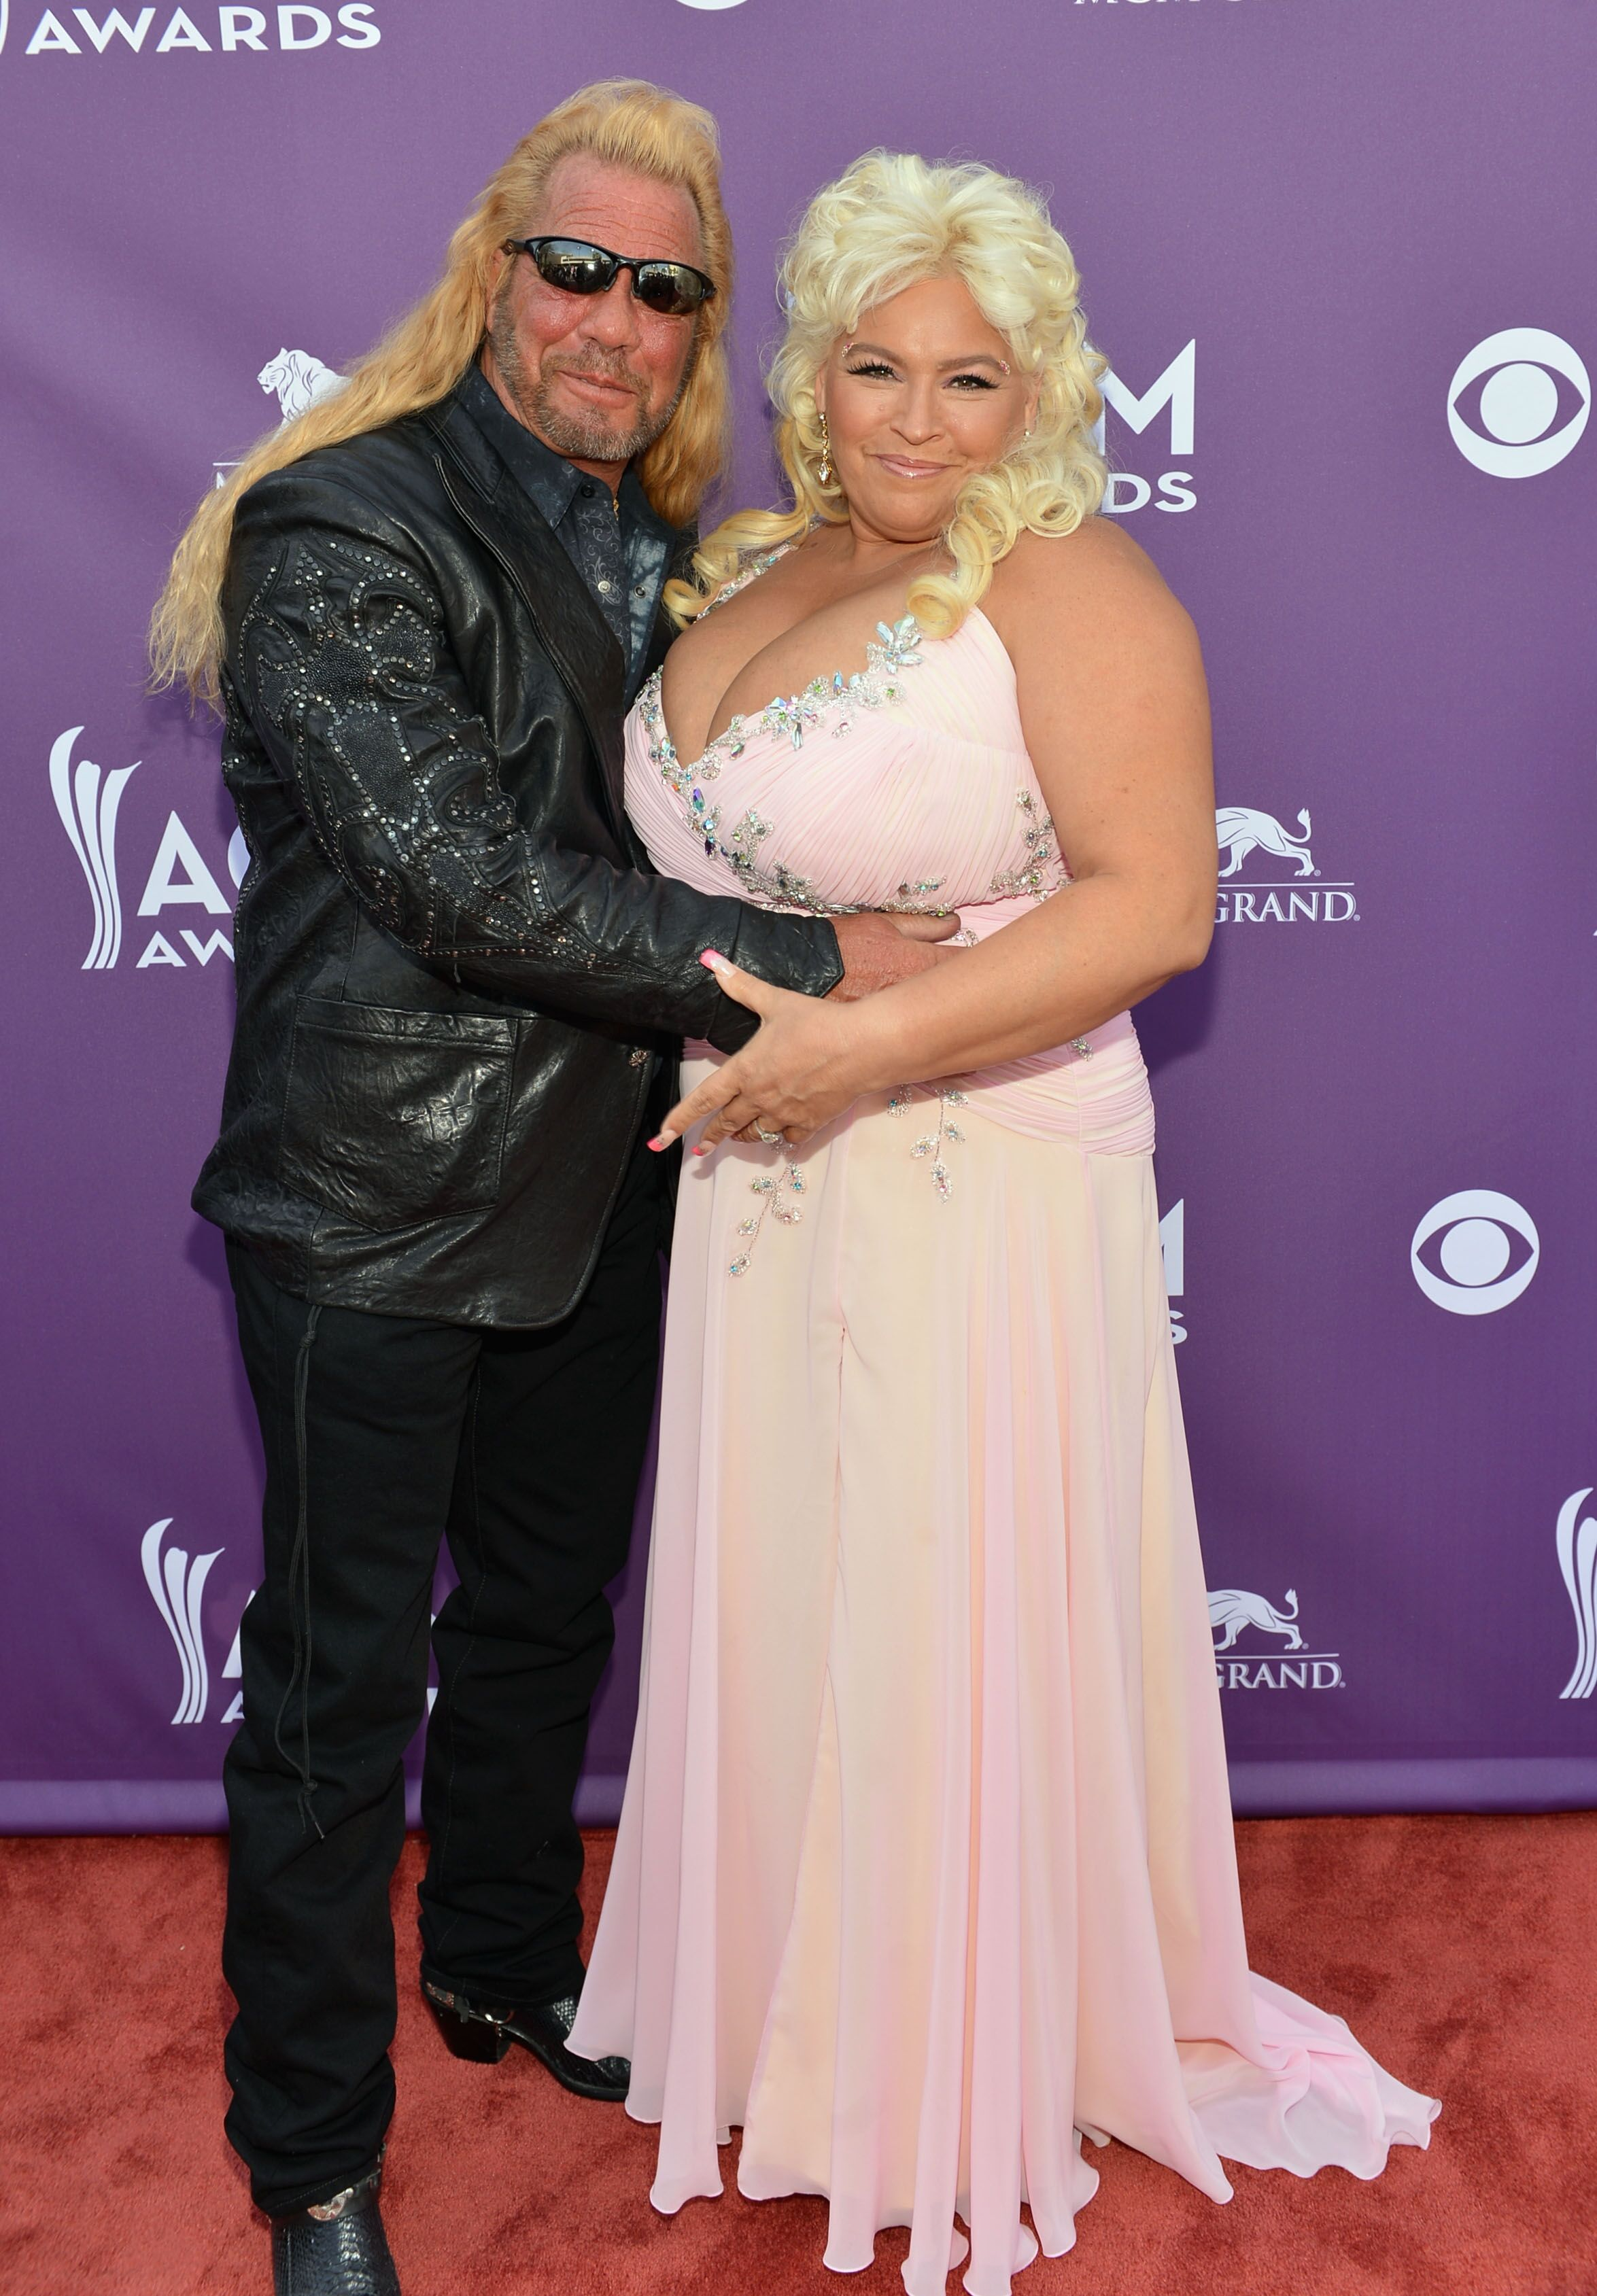 """TV personalities Duane """"Dog"""" Chapman and Beth Smith attend the 48th Annual Academy of Country Music Awards at the MGM Grand Garden Arena on April 7, 2013 in Las Vegas, Nevada 